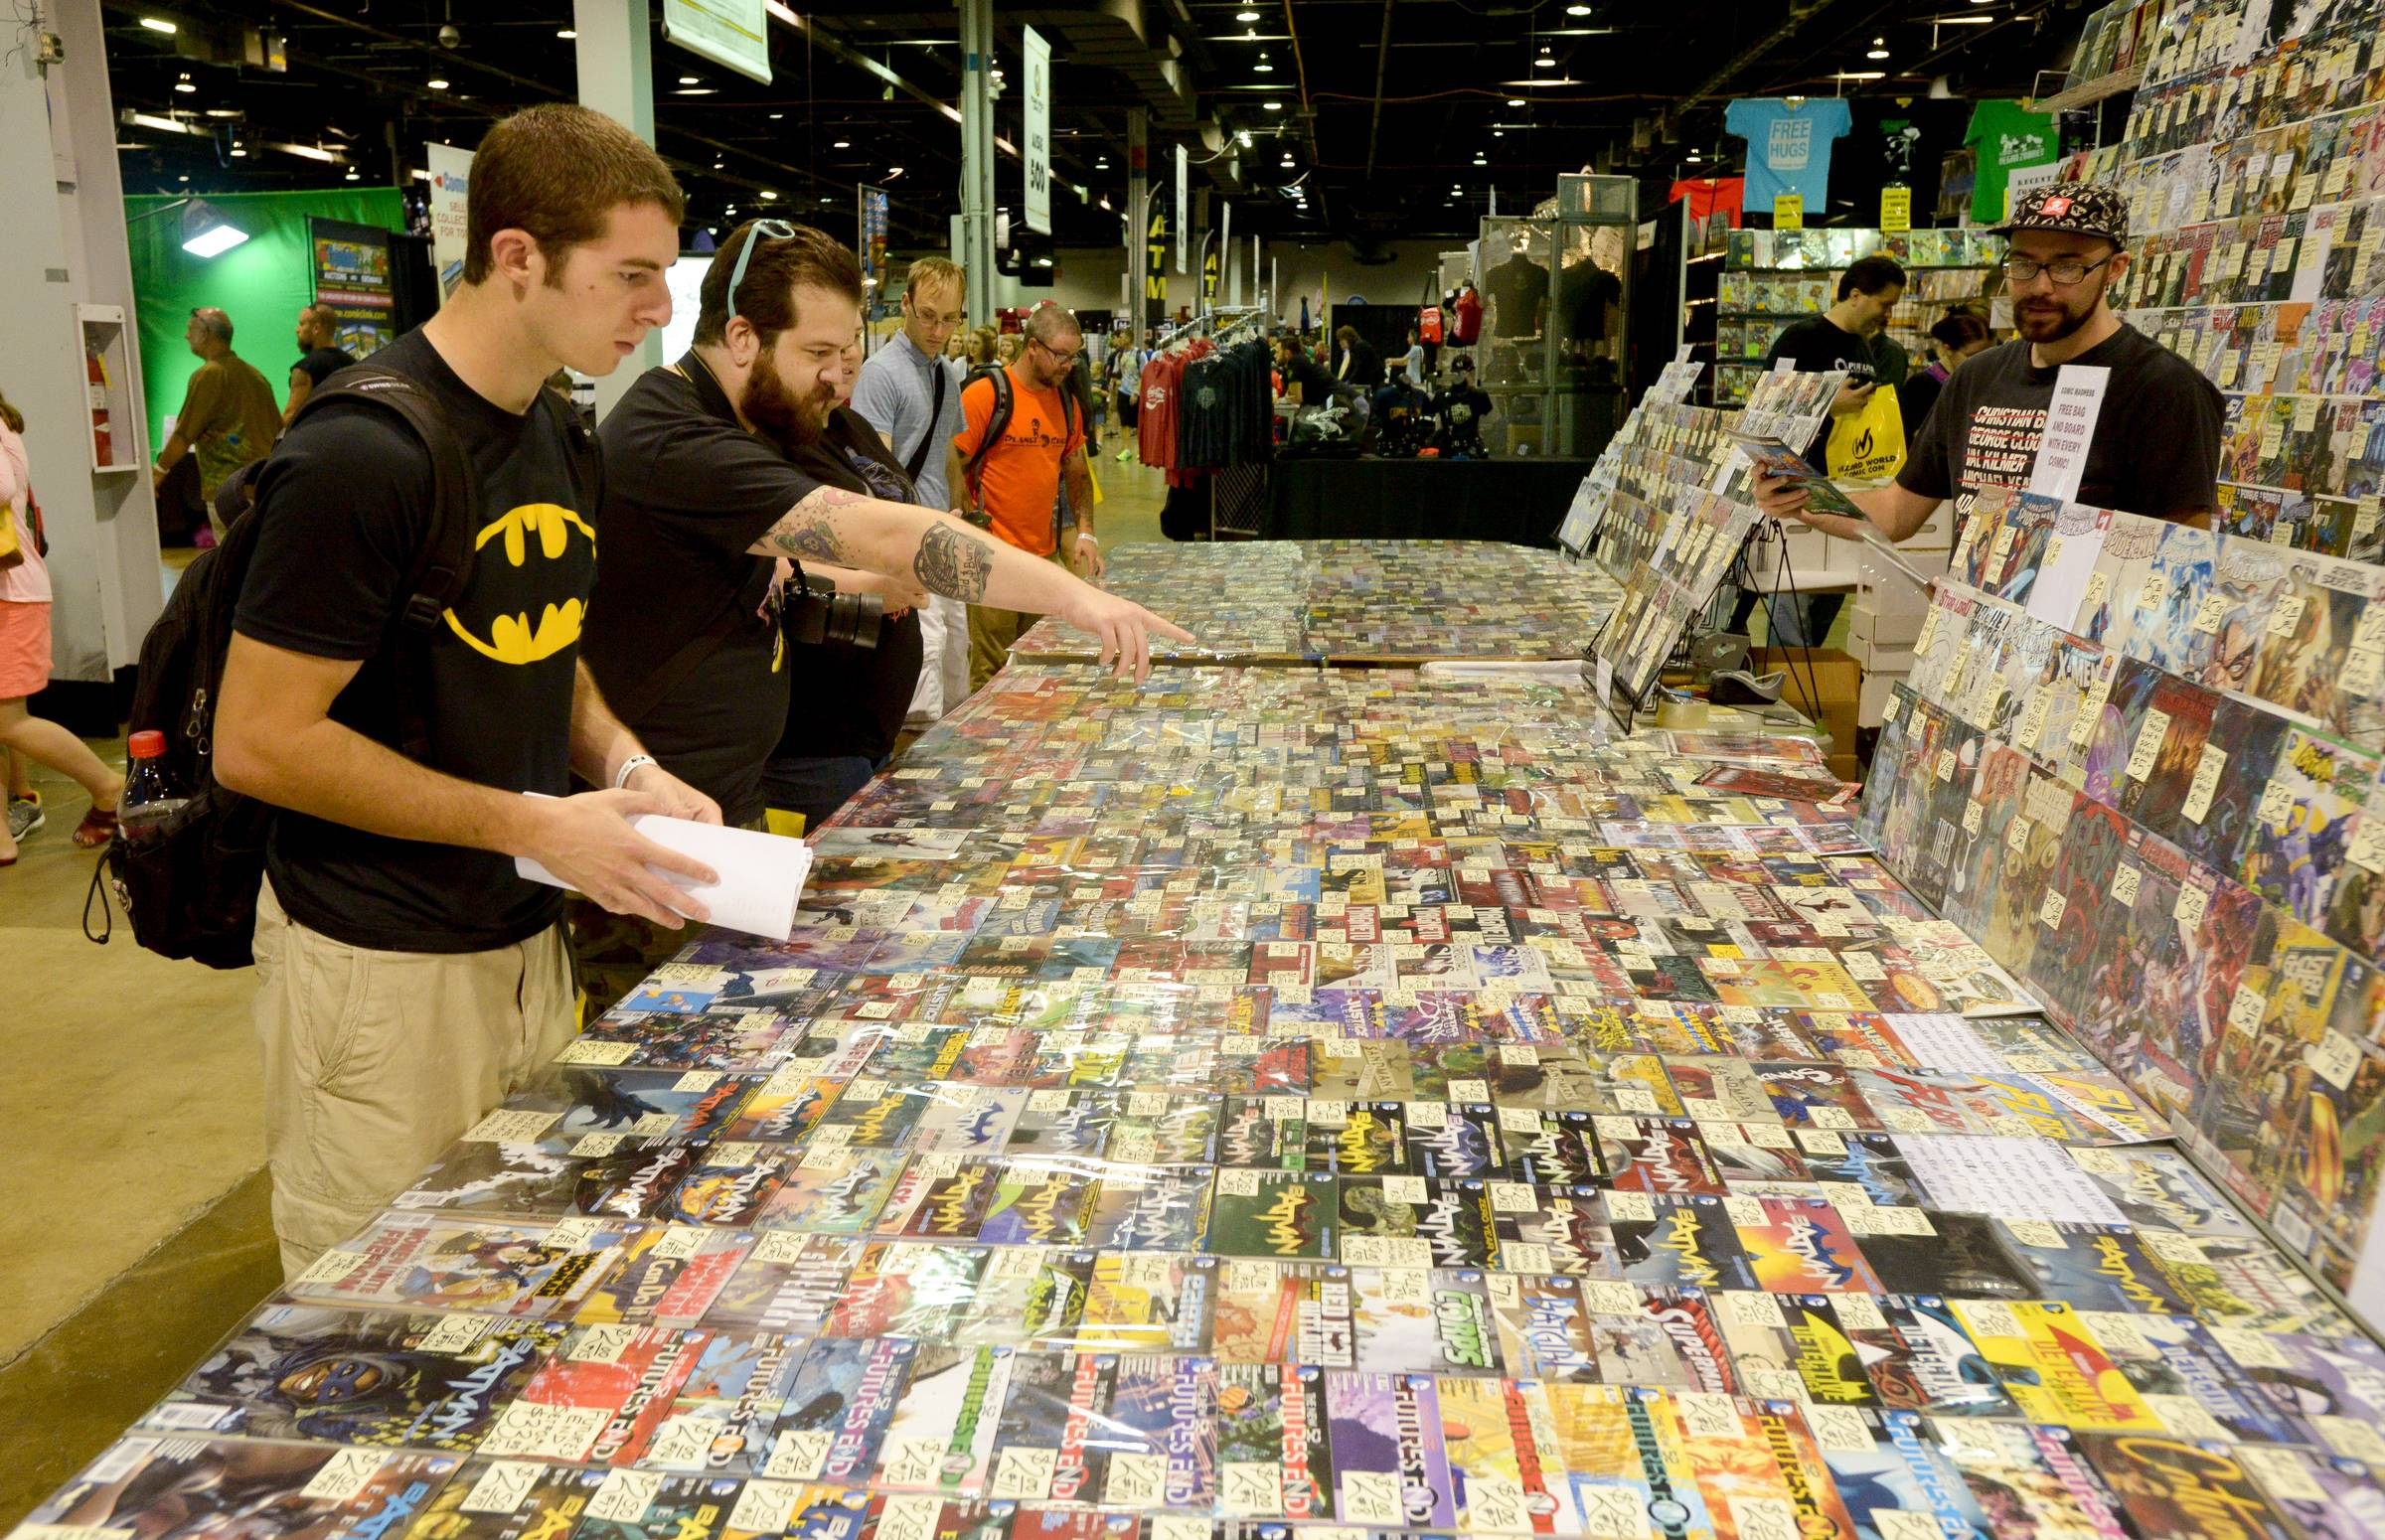 The Comic Con convention at the Donald E. Stephens Convention Center in Rosemont had a massive selection of comic books for fans to buy.